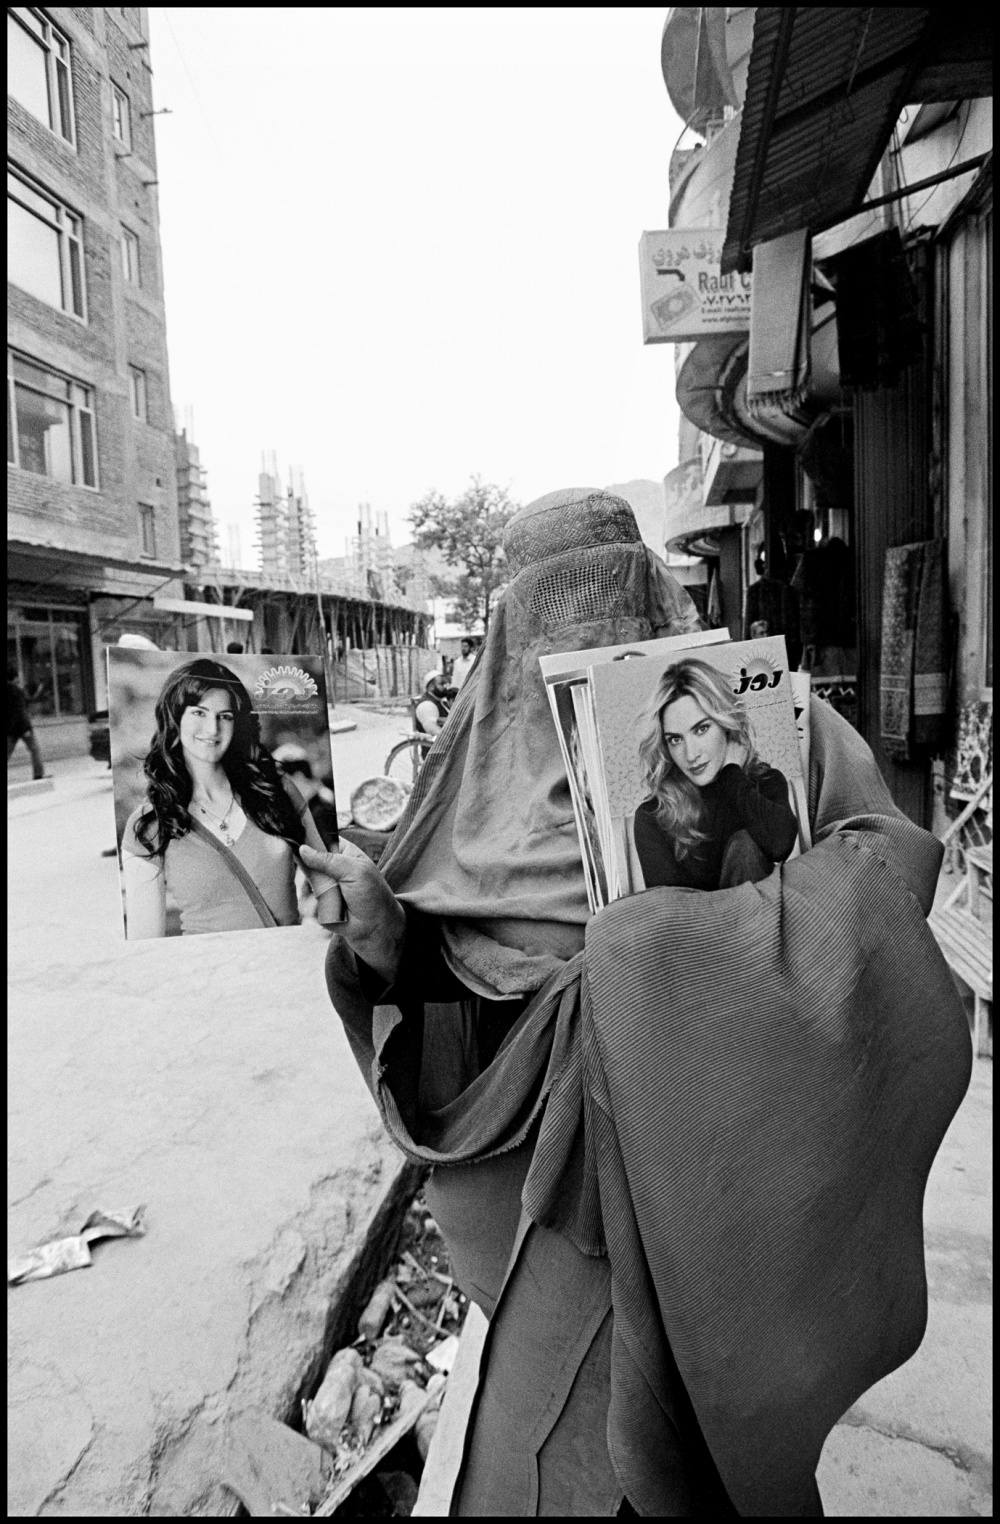 Larry Towell, Woman selling glamour magazines. Kabul, Afghanistan, 2010 © Larry Towell/Magnum Photos